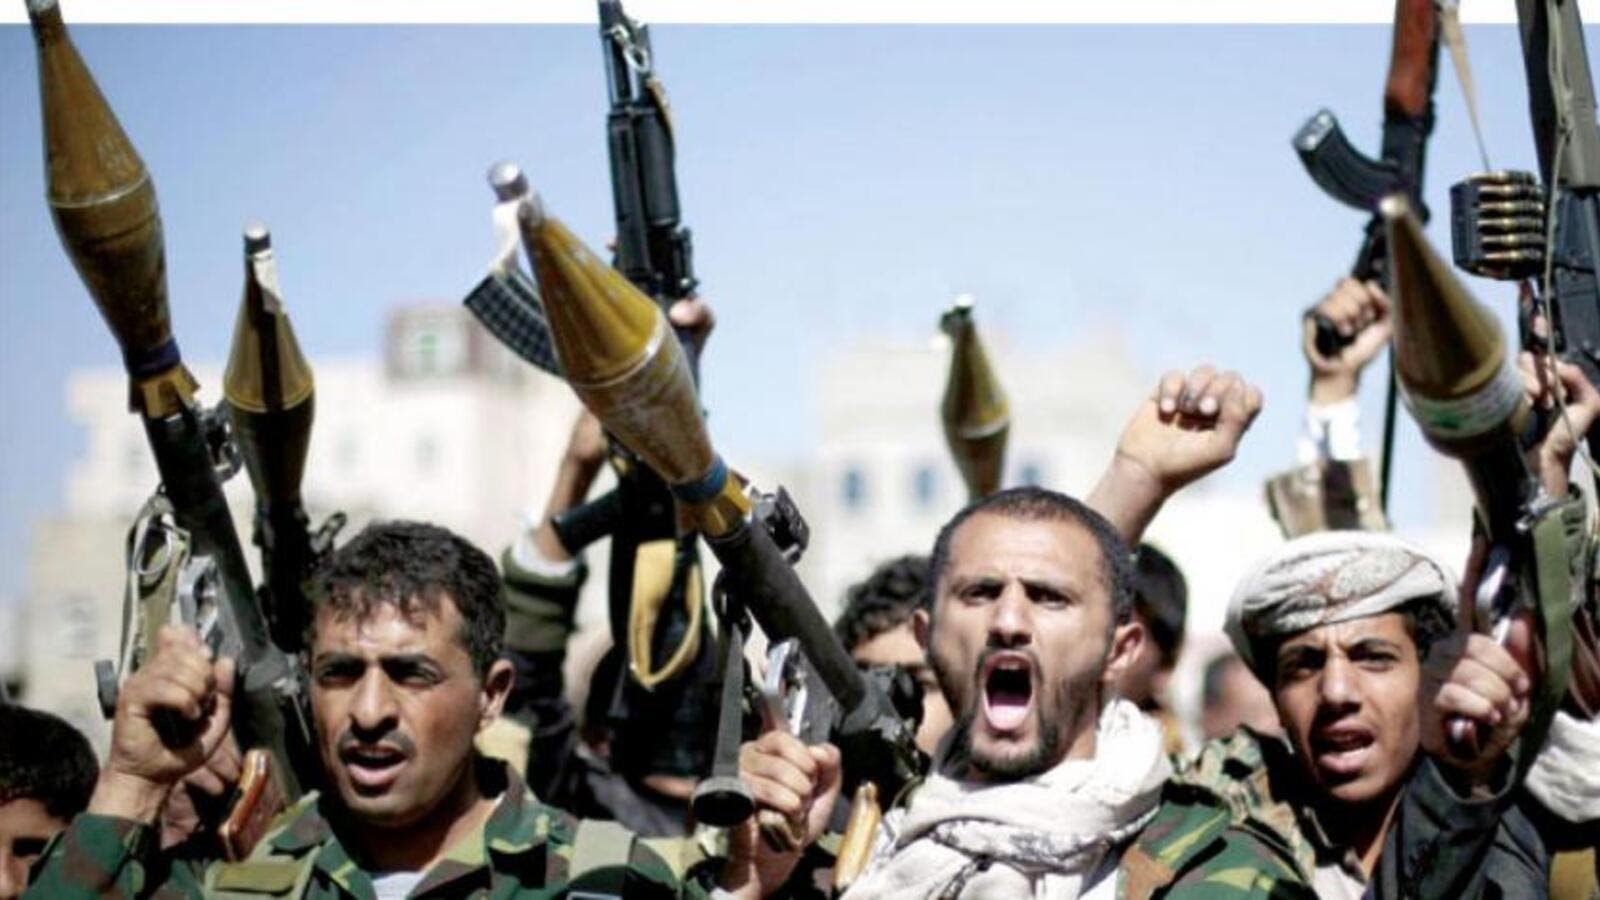 Tribesmen loyal to Houthi rebels hold their weapons in Sana'a. (AFP/ File)